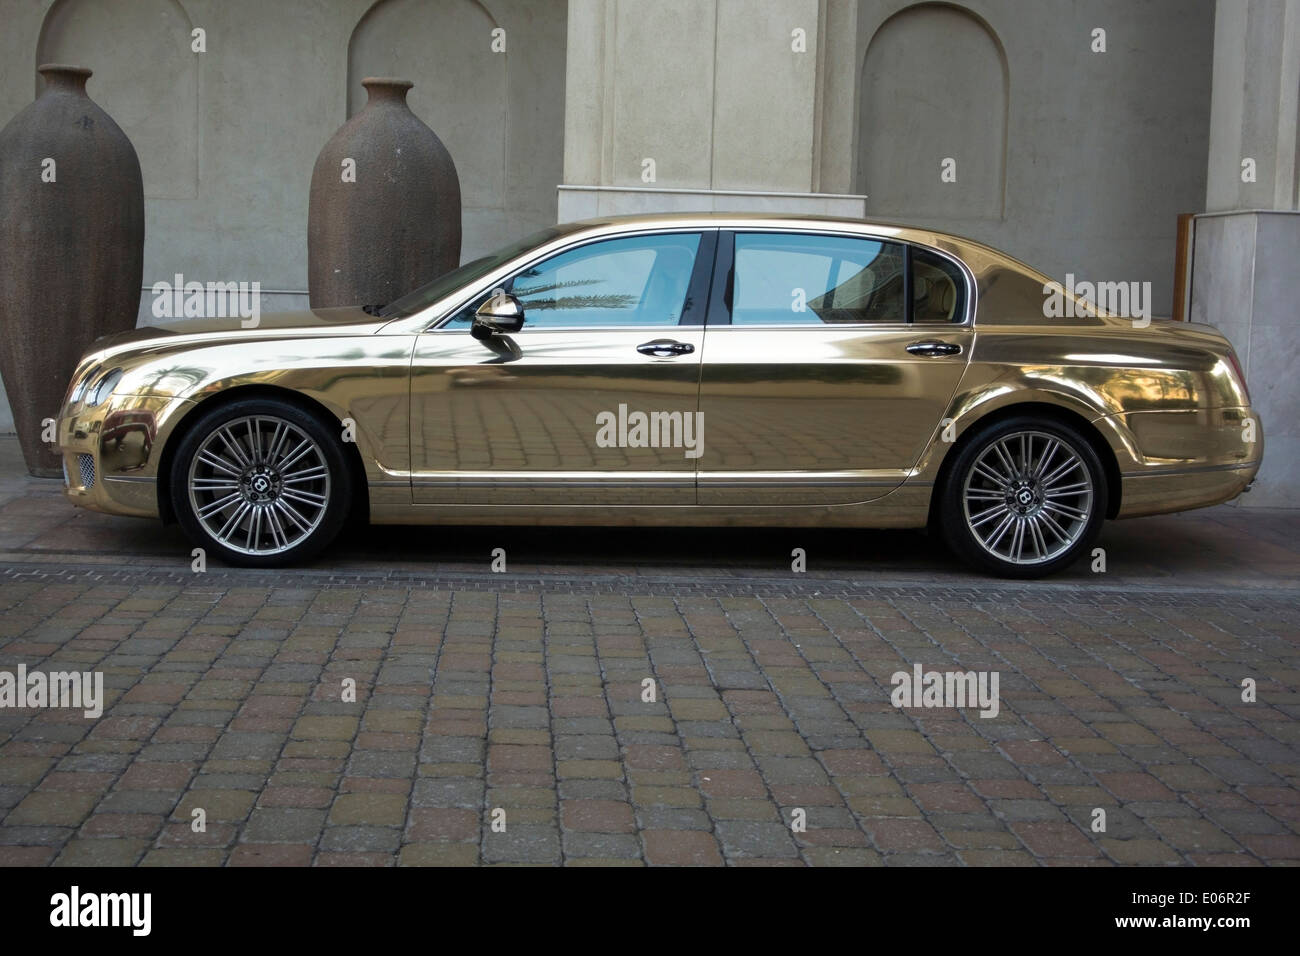 Bentley continental flying spur stock photos bentley continental gold bentley continental flying spur motor car stock image vanachro Gallery